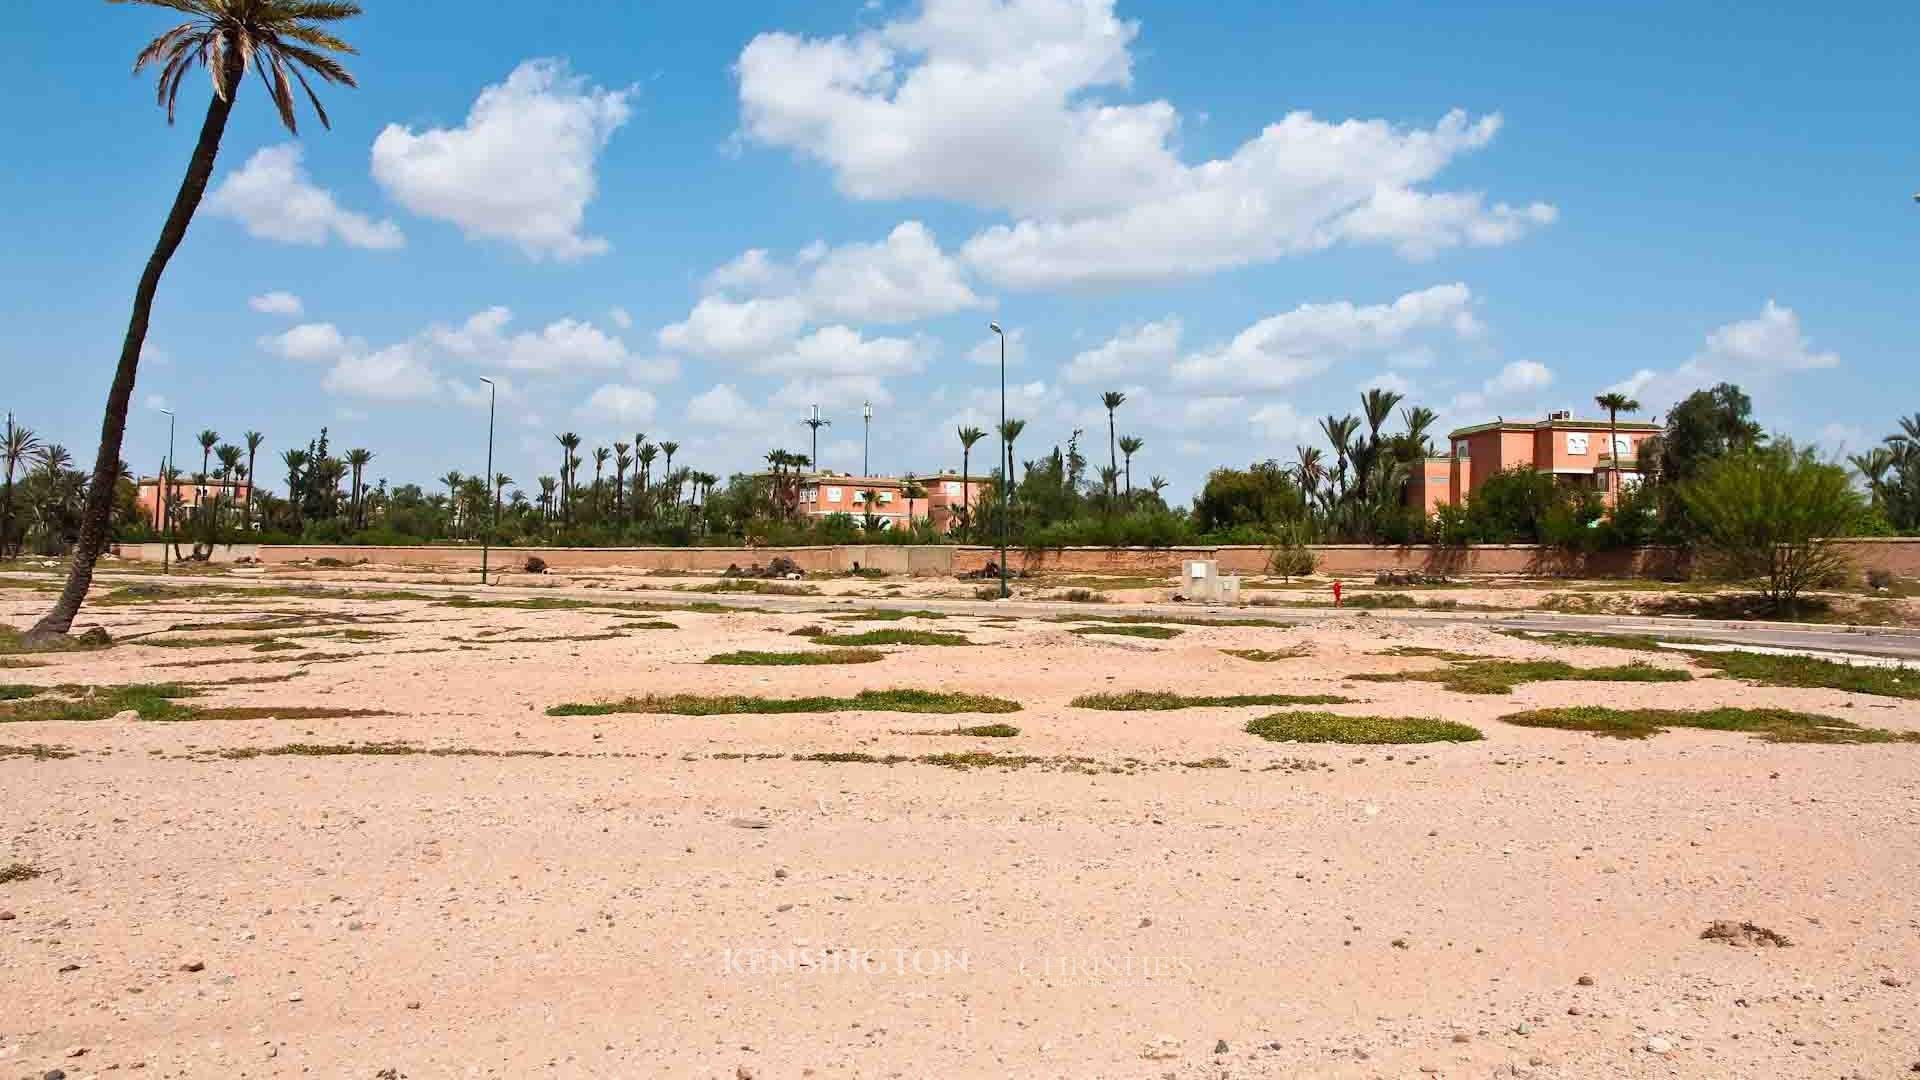 KPPM00990: Building Land Acamar Building land Marrakech Morocco